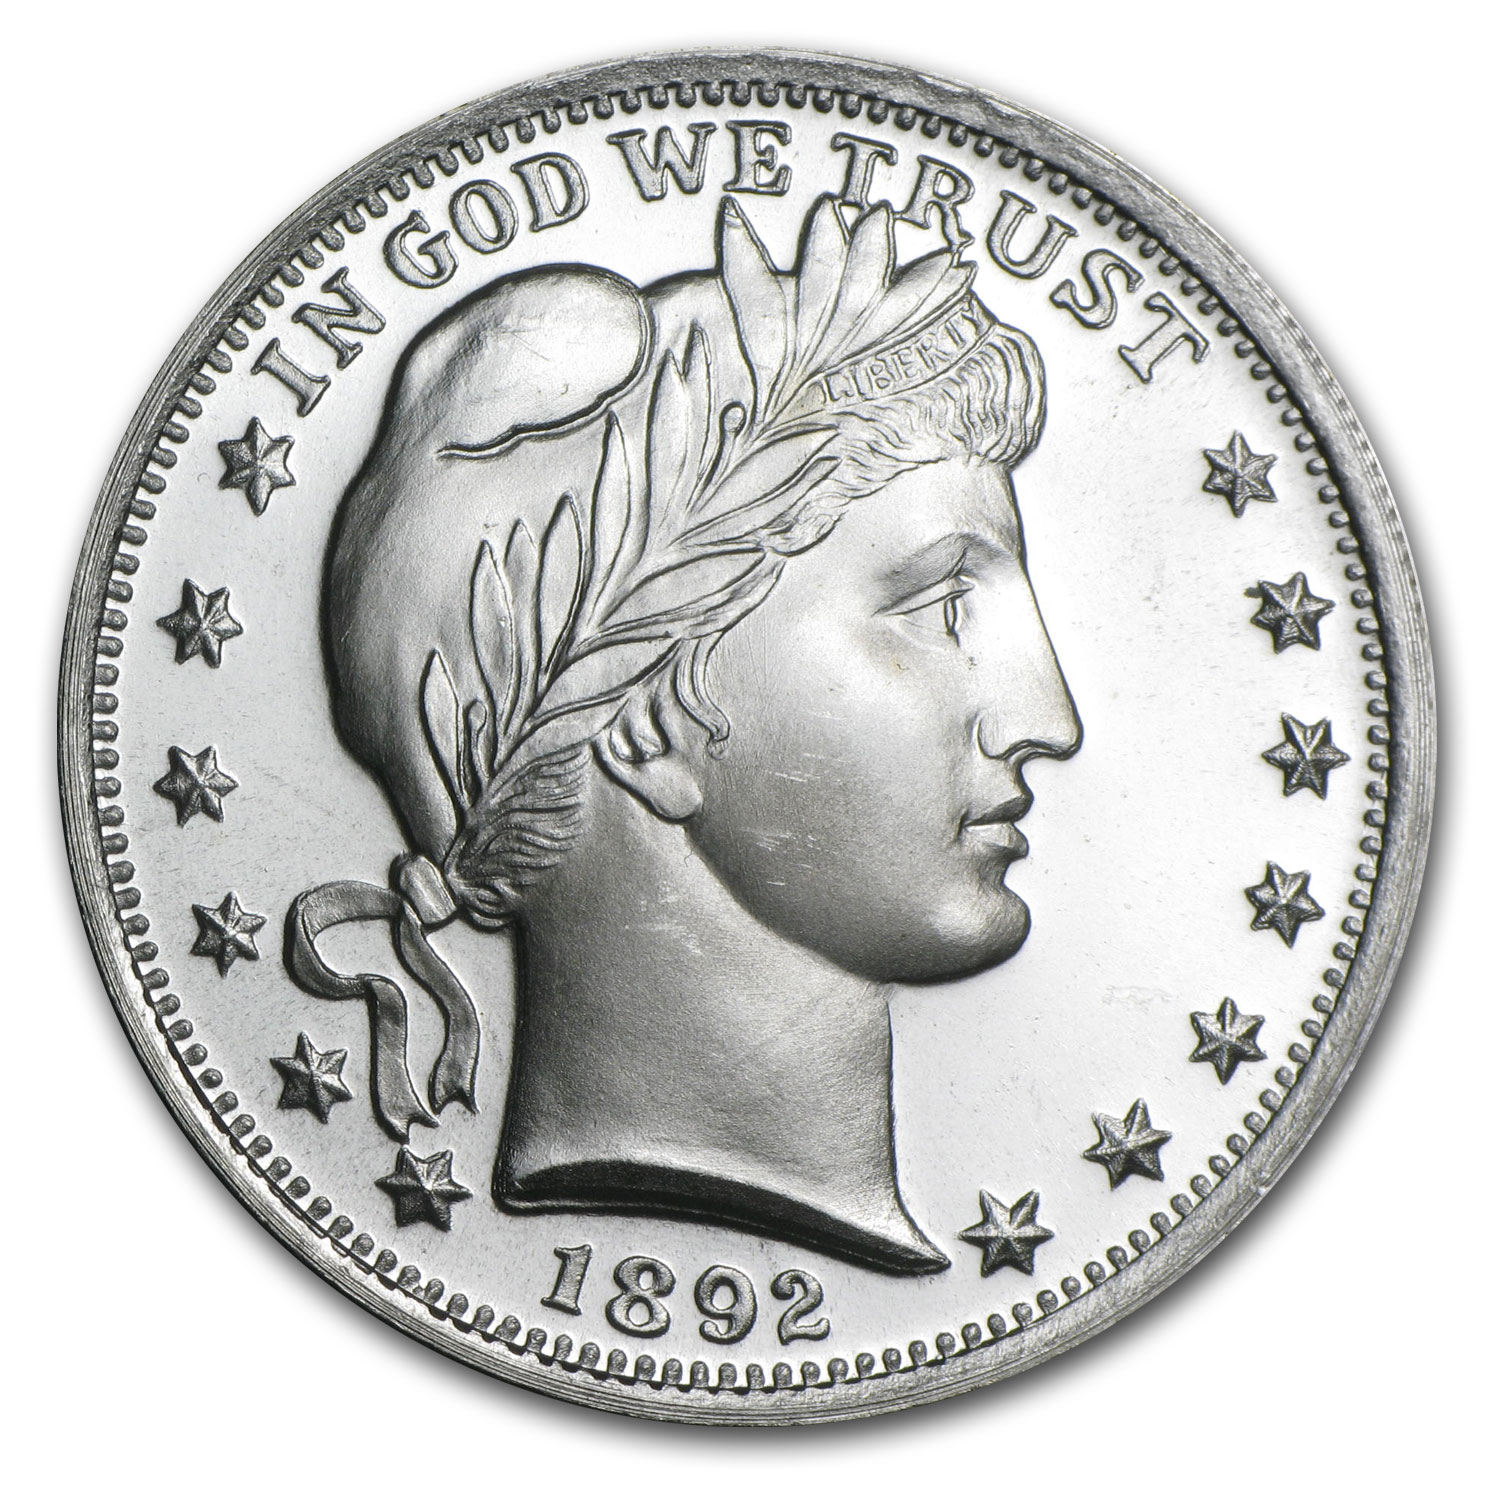 1 oz Silver Rounds - Barber Design